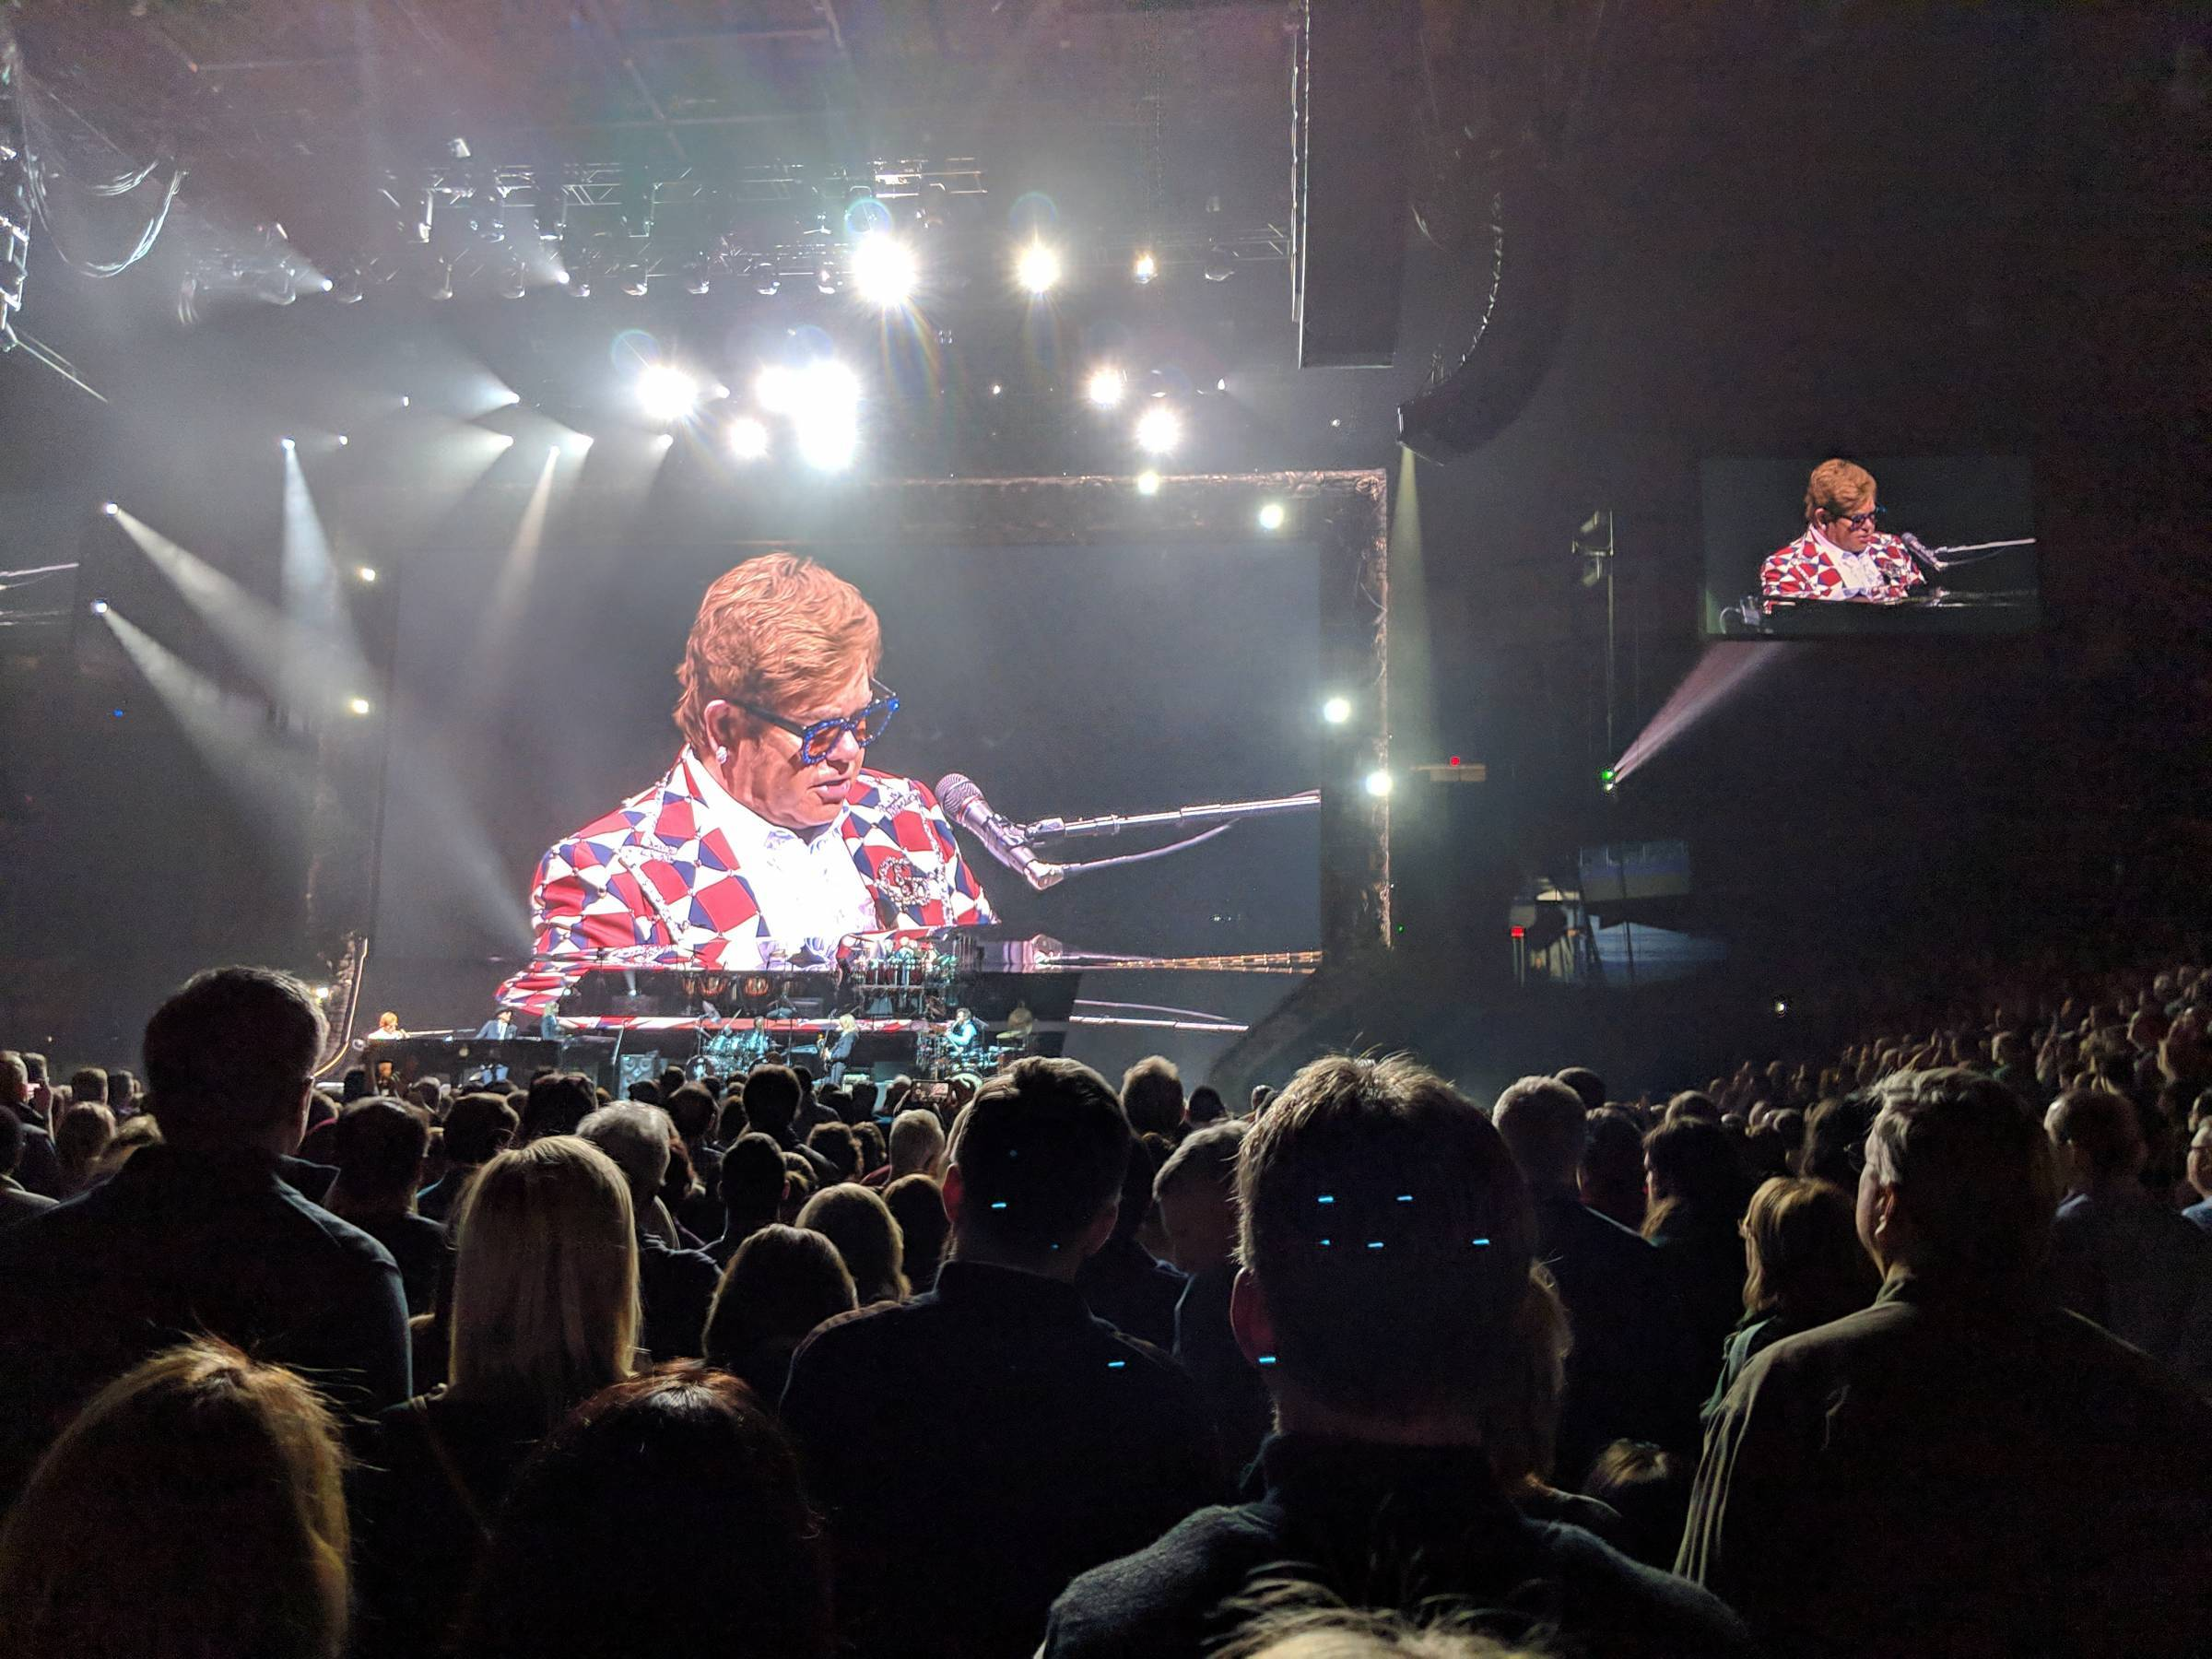 Elton John Photo with Crowd